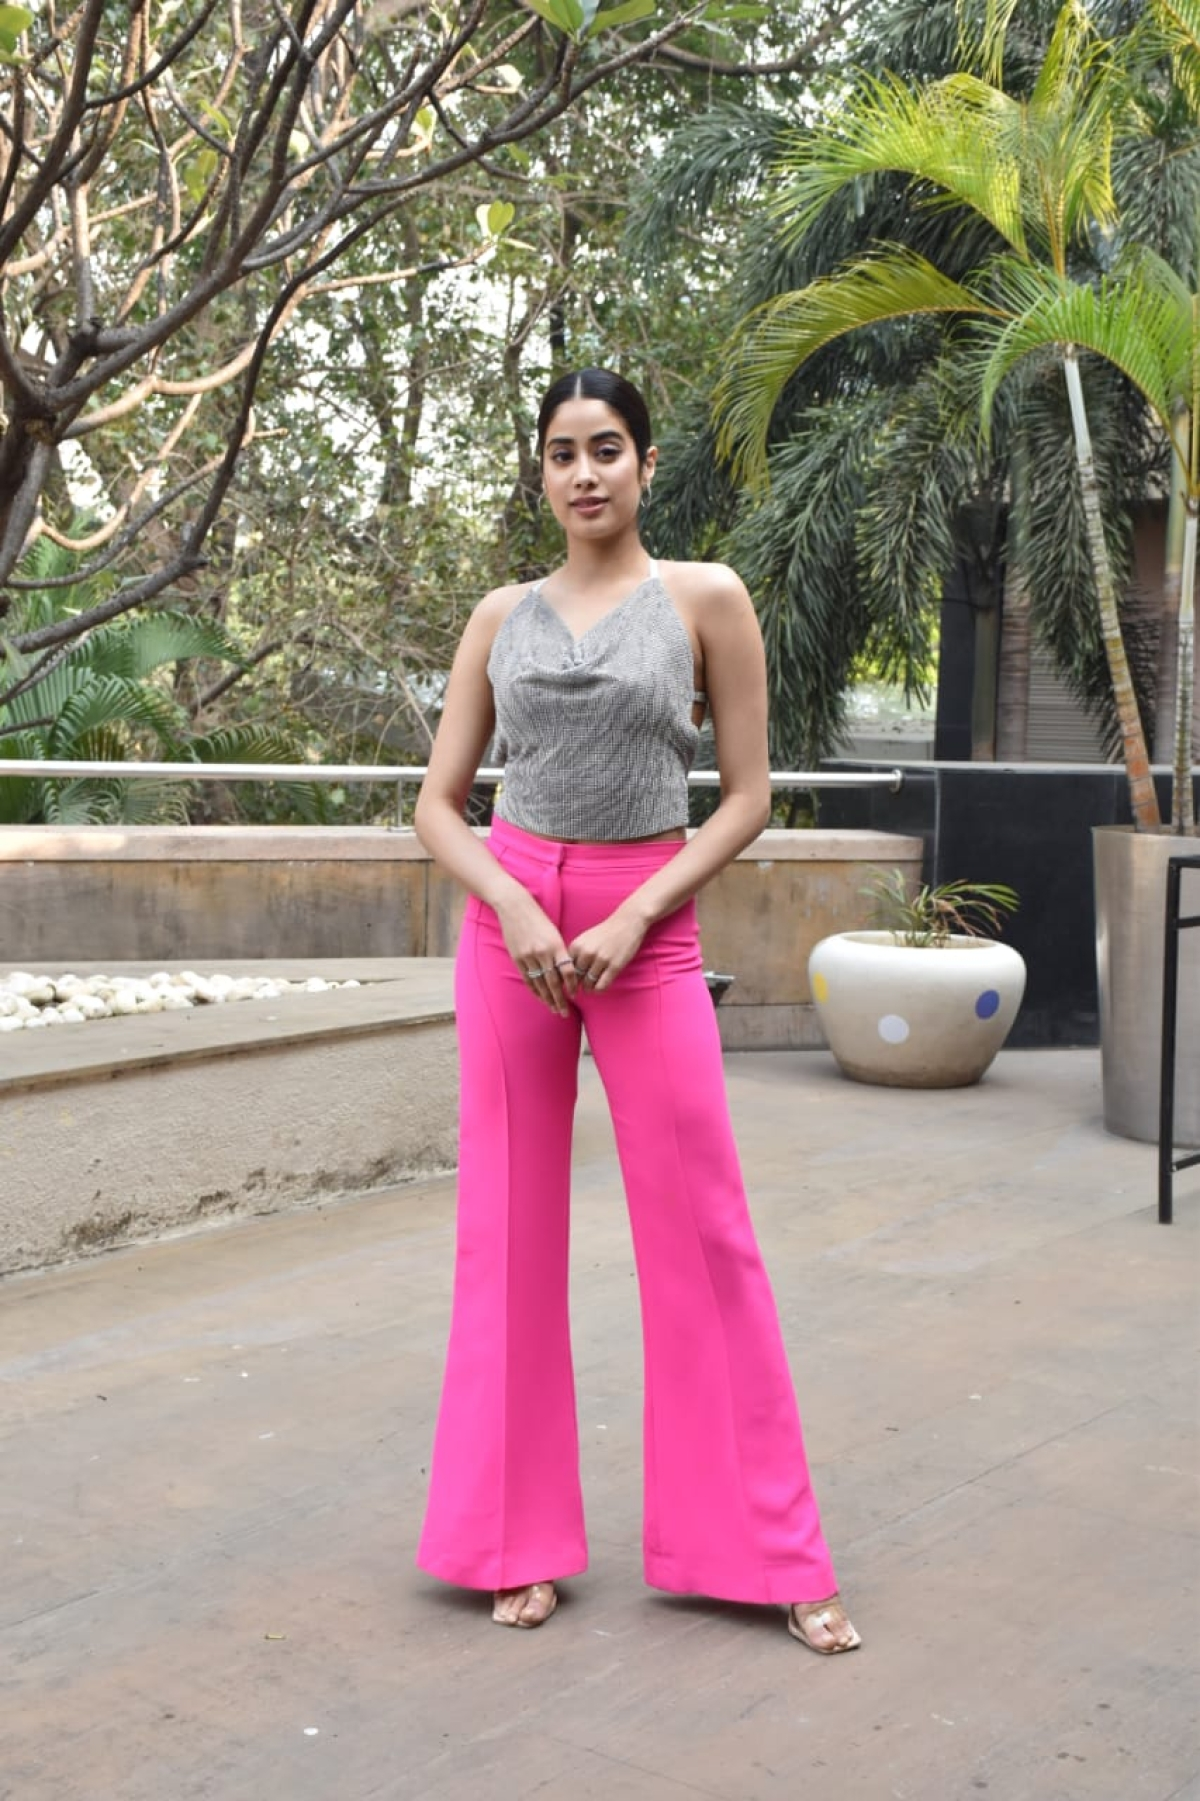 In pics: Janhvi Kapoor flaunts her sexy back in a shimmery sequinned top during 'Roohi' promotions